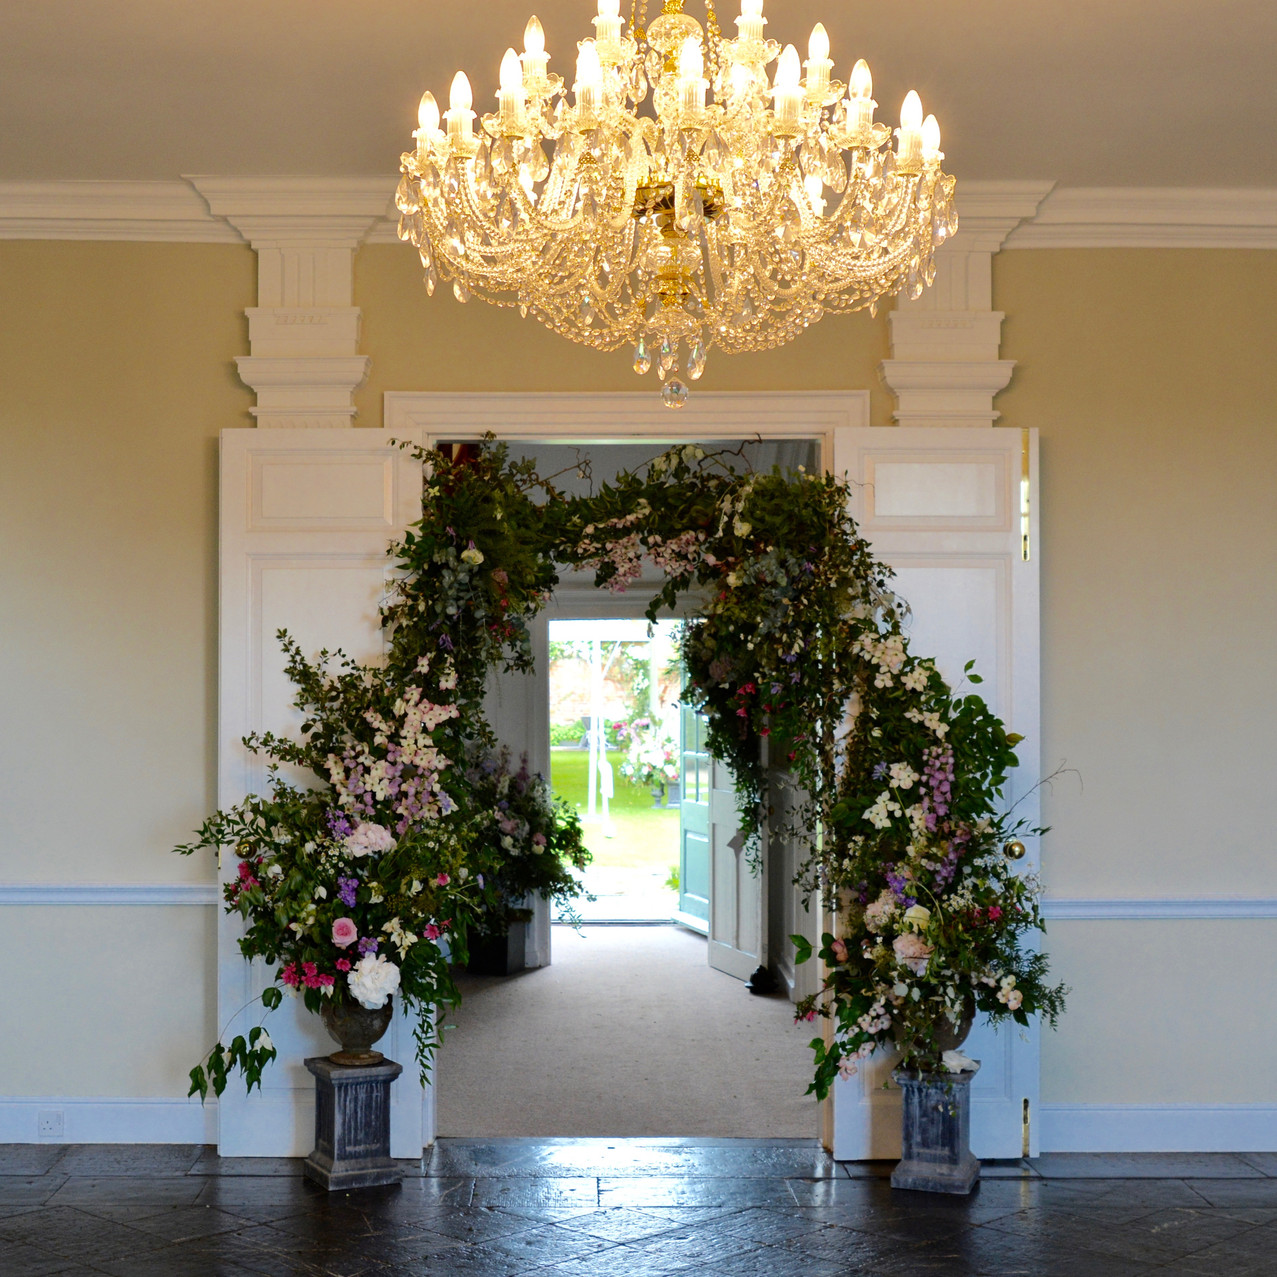 Entrance room of Kingston House - doors leading towards the grand staircase and ceremony garden. Doors